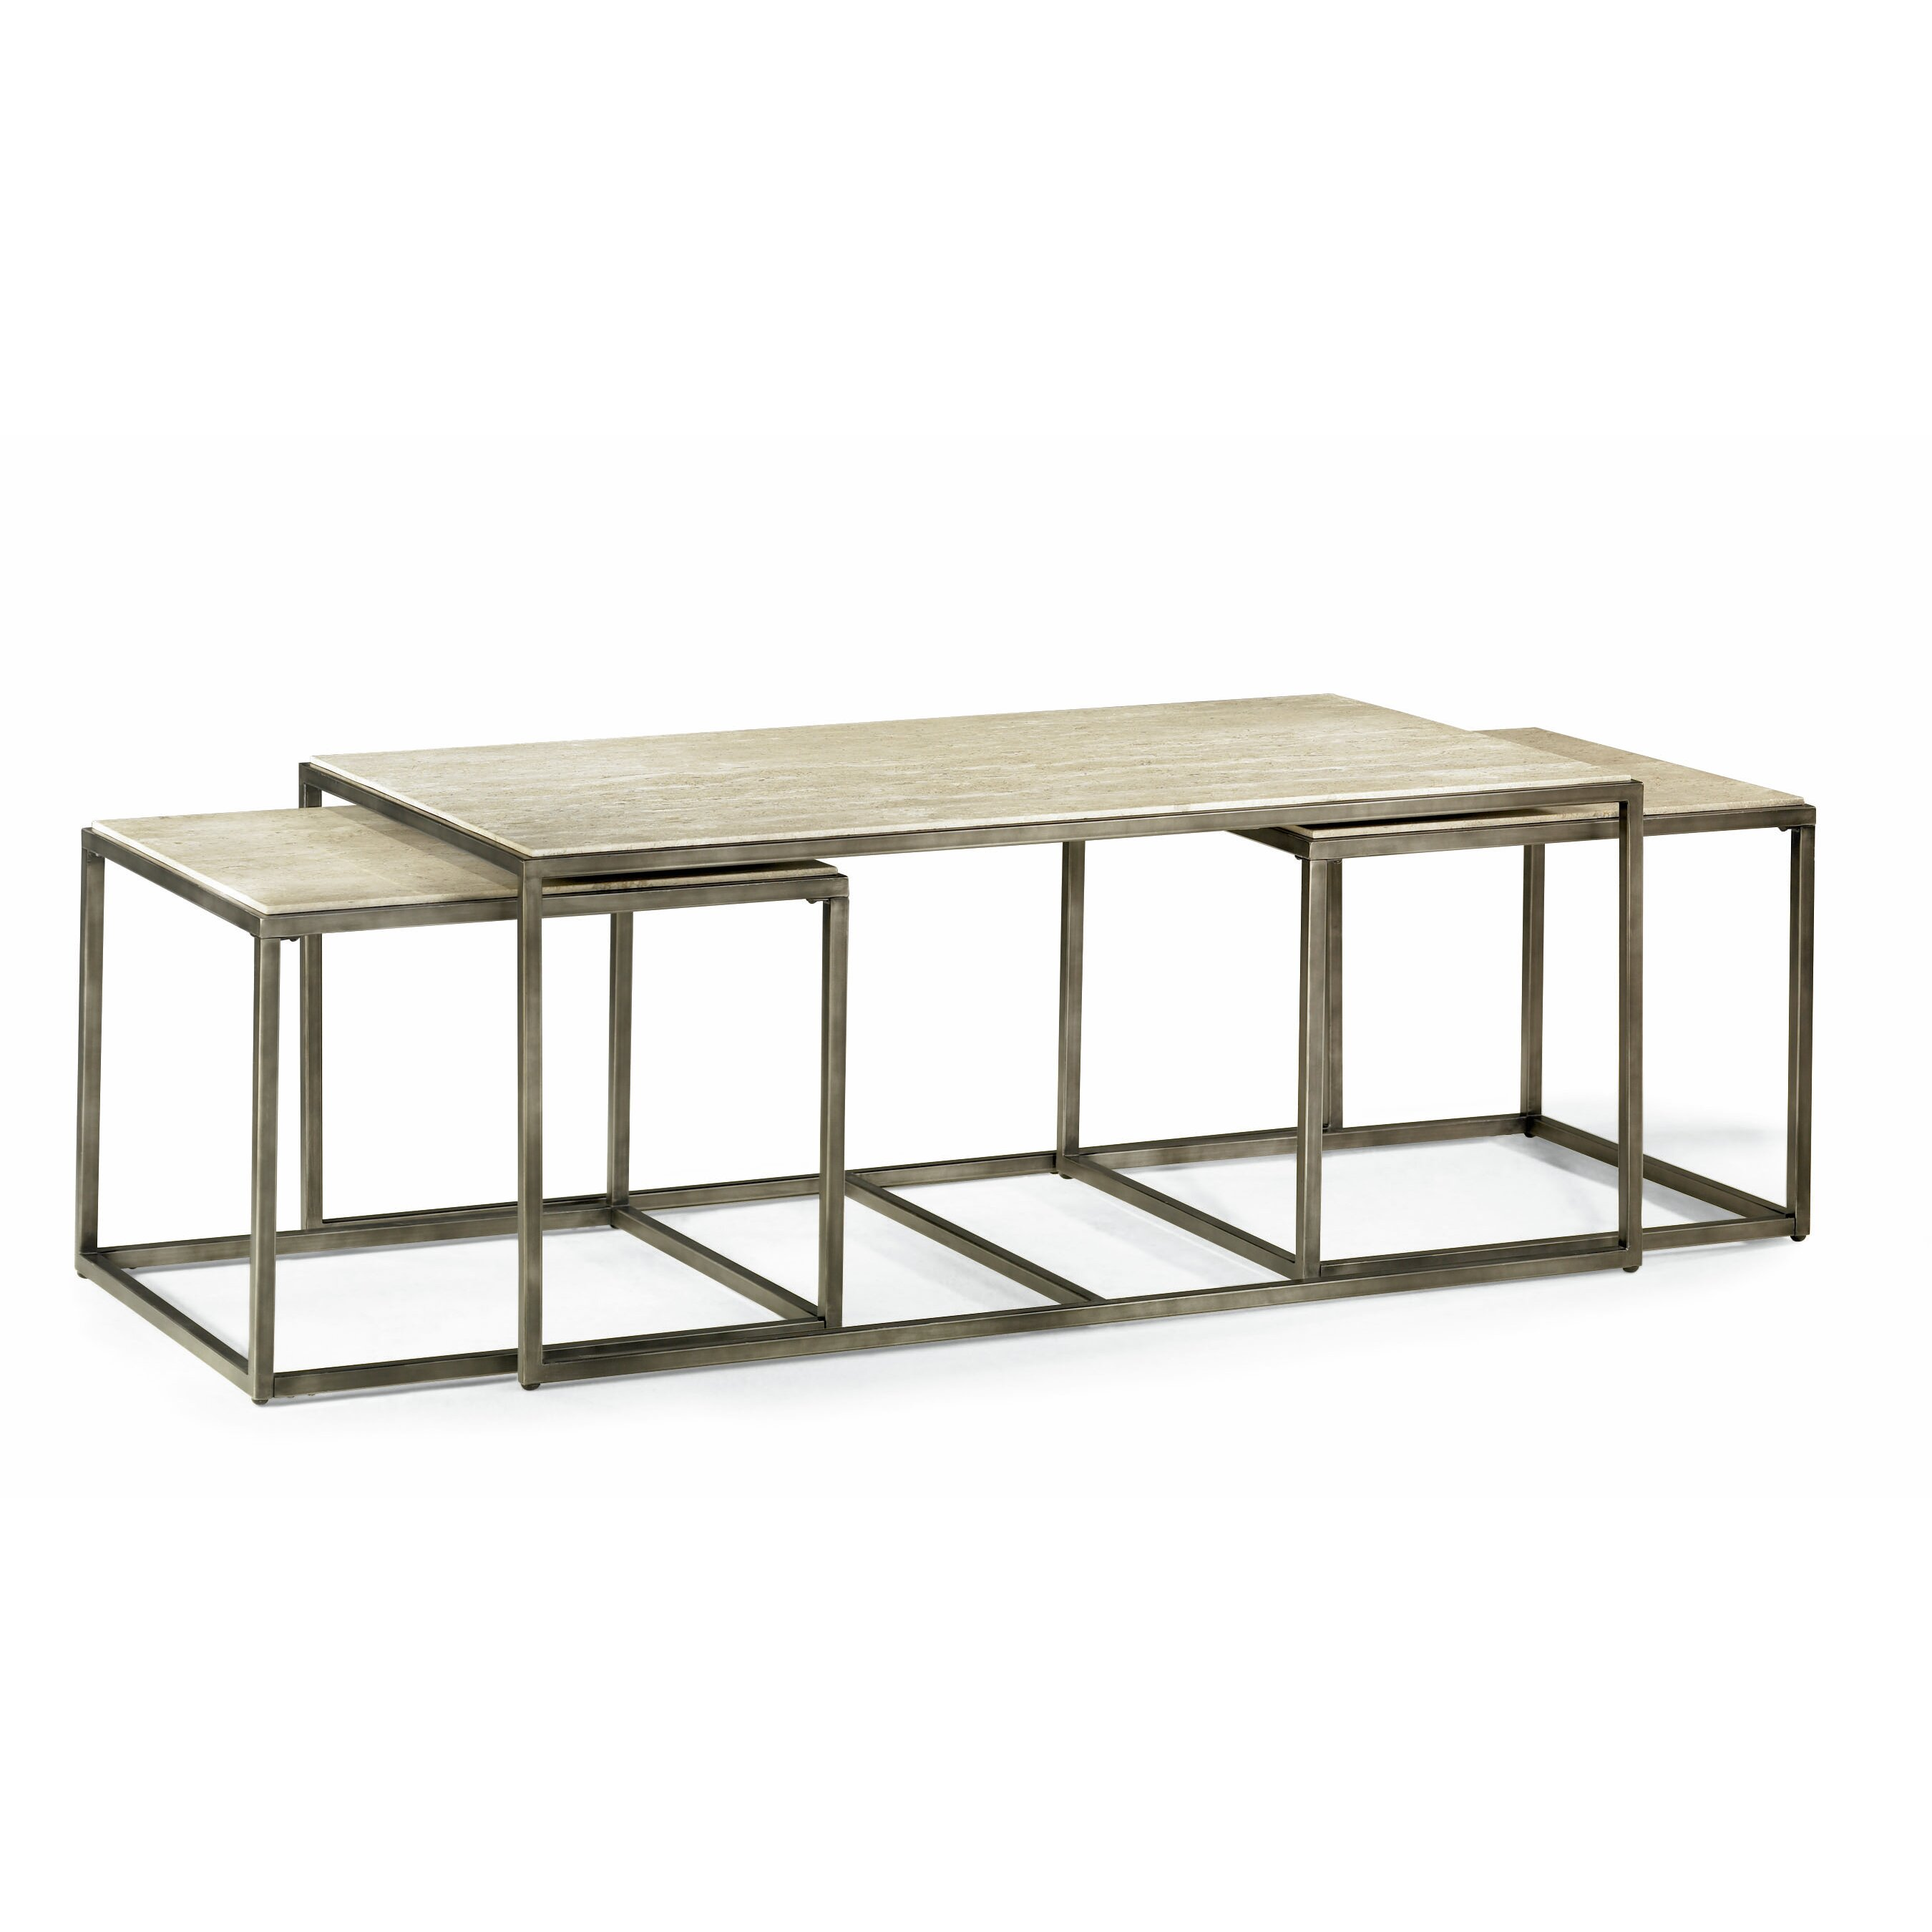 Brayden Studio Masuda Nesting Coffee Table Reviews